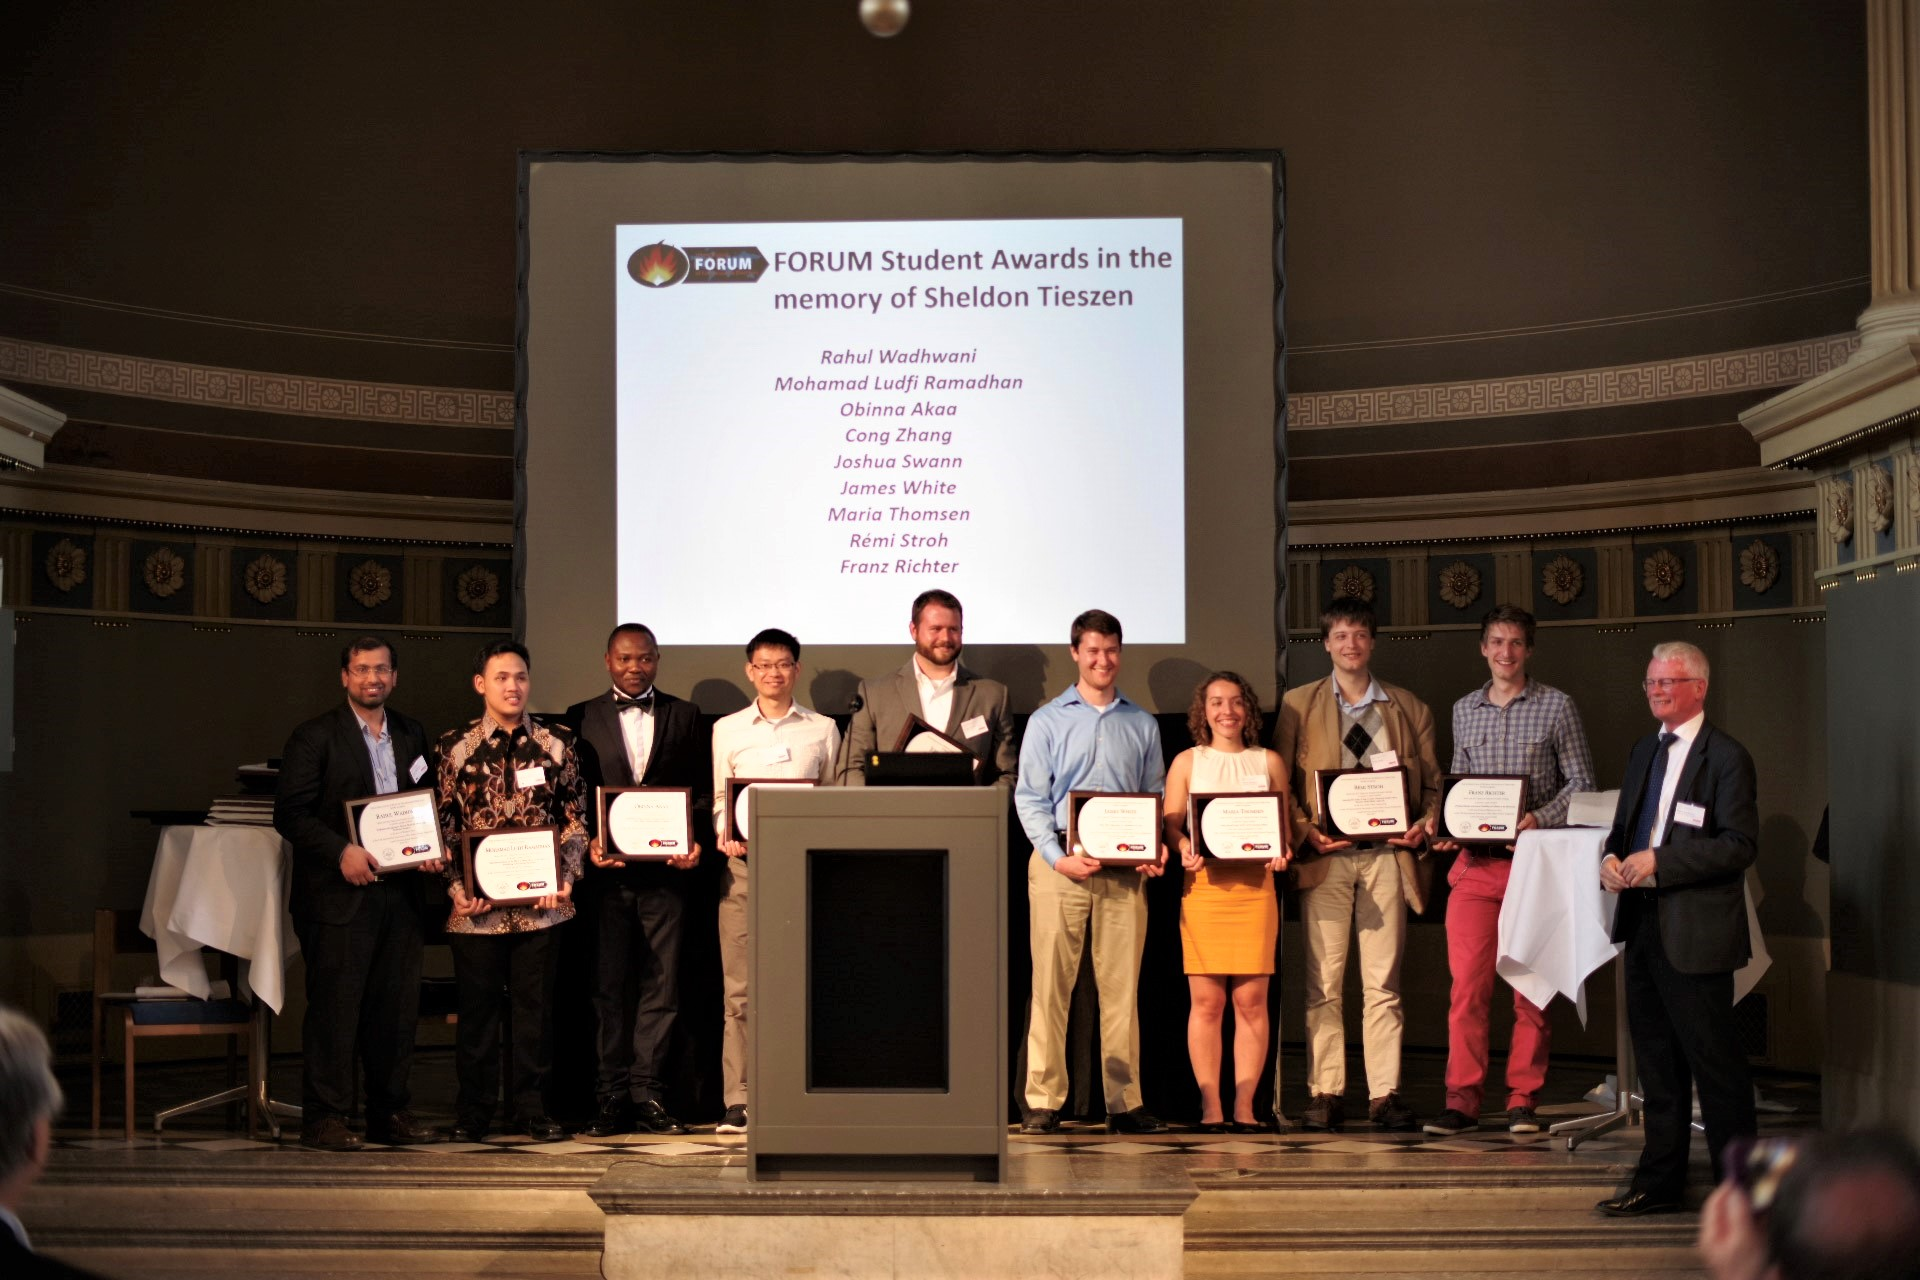 Students recognized with the FORUM Sheldon Tieszen Student Awards. UMD students recognized include Cong Zhang (4th from left), Joshua Swann (5th from left) and Dr. James White (6th from left). Photo credit: Michael Strömgren.